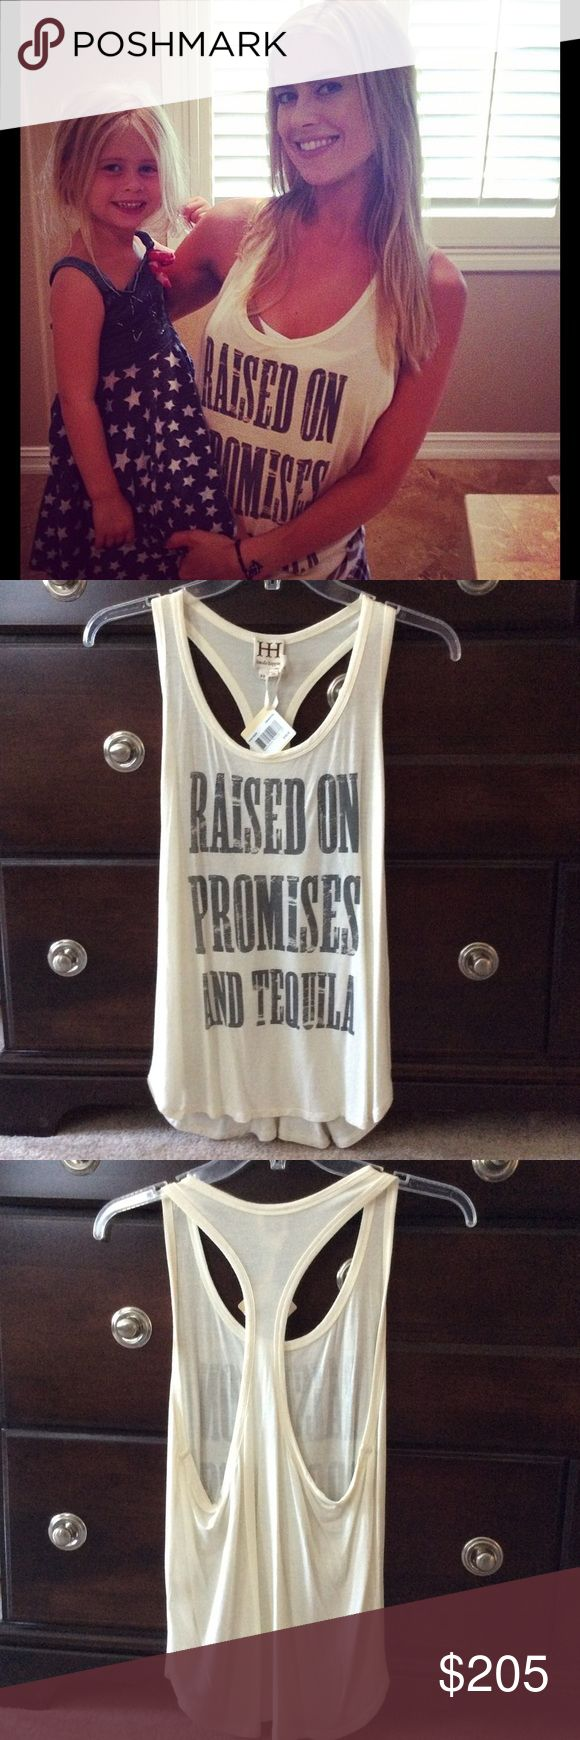 Haute Hippie Raised on Promises and Tequila Tank Haute Hippie Raised on Promises and Tequila Racerback Tank. Swan/coal. Size XS. As seen on Christina El Moussa from Flip or Flop. Haute Hippie Tops Tank Tops